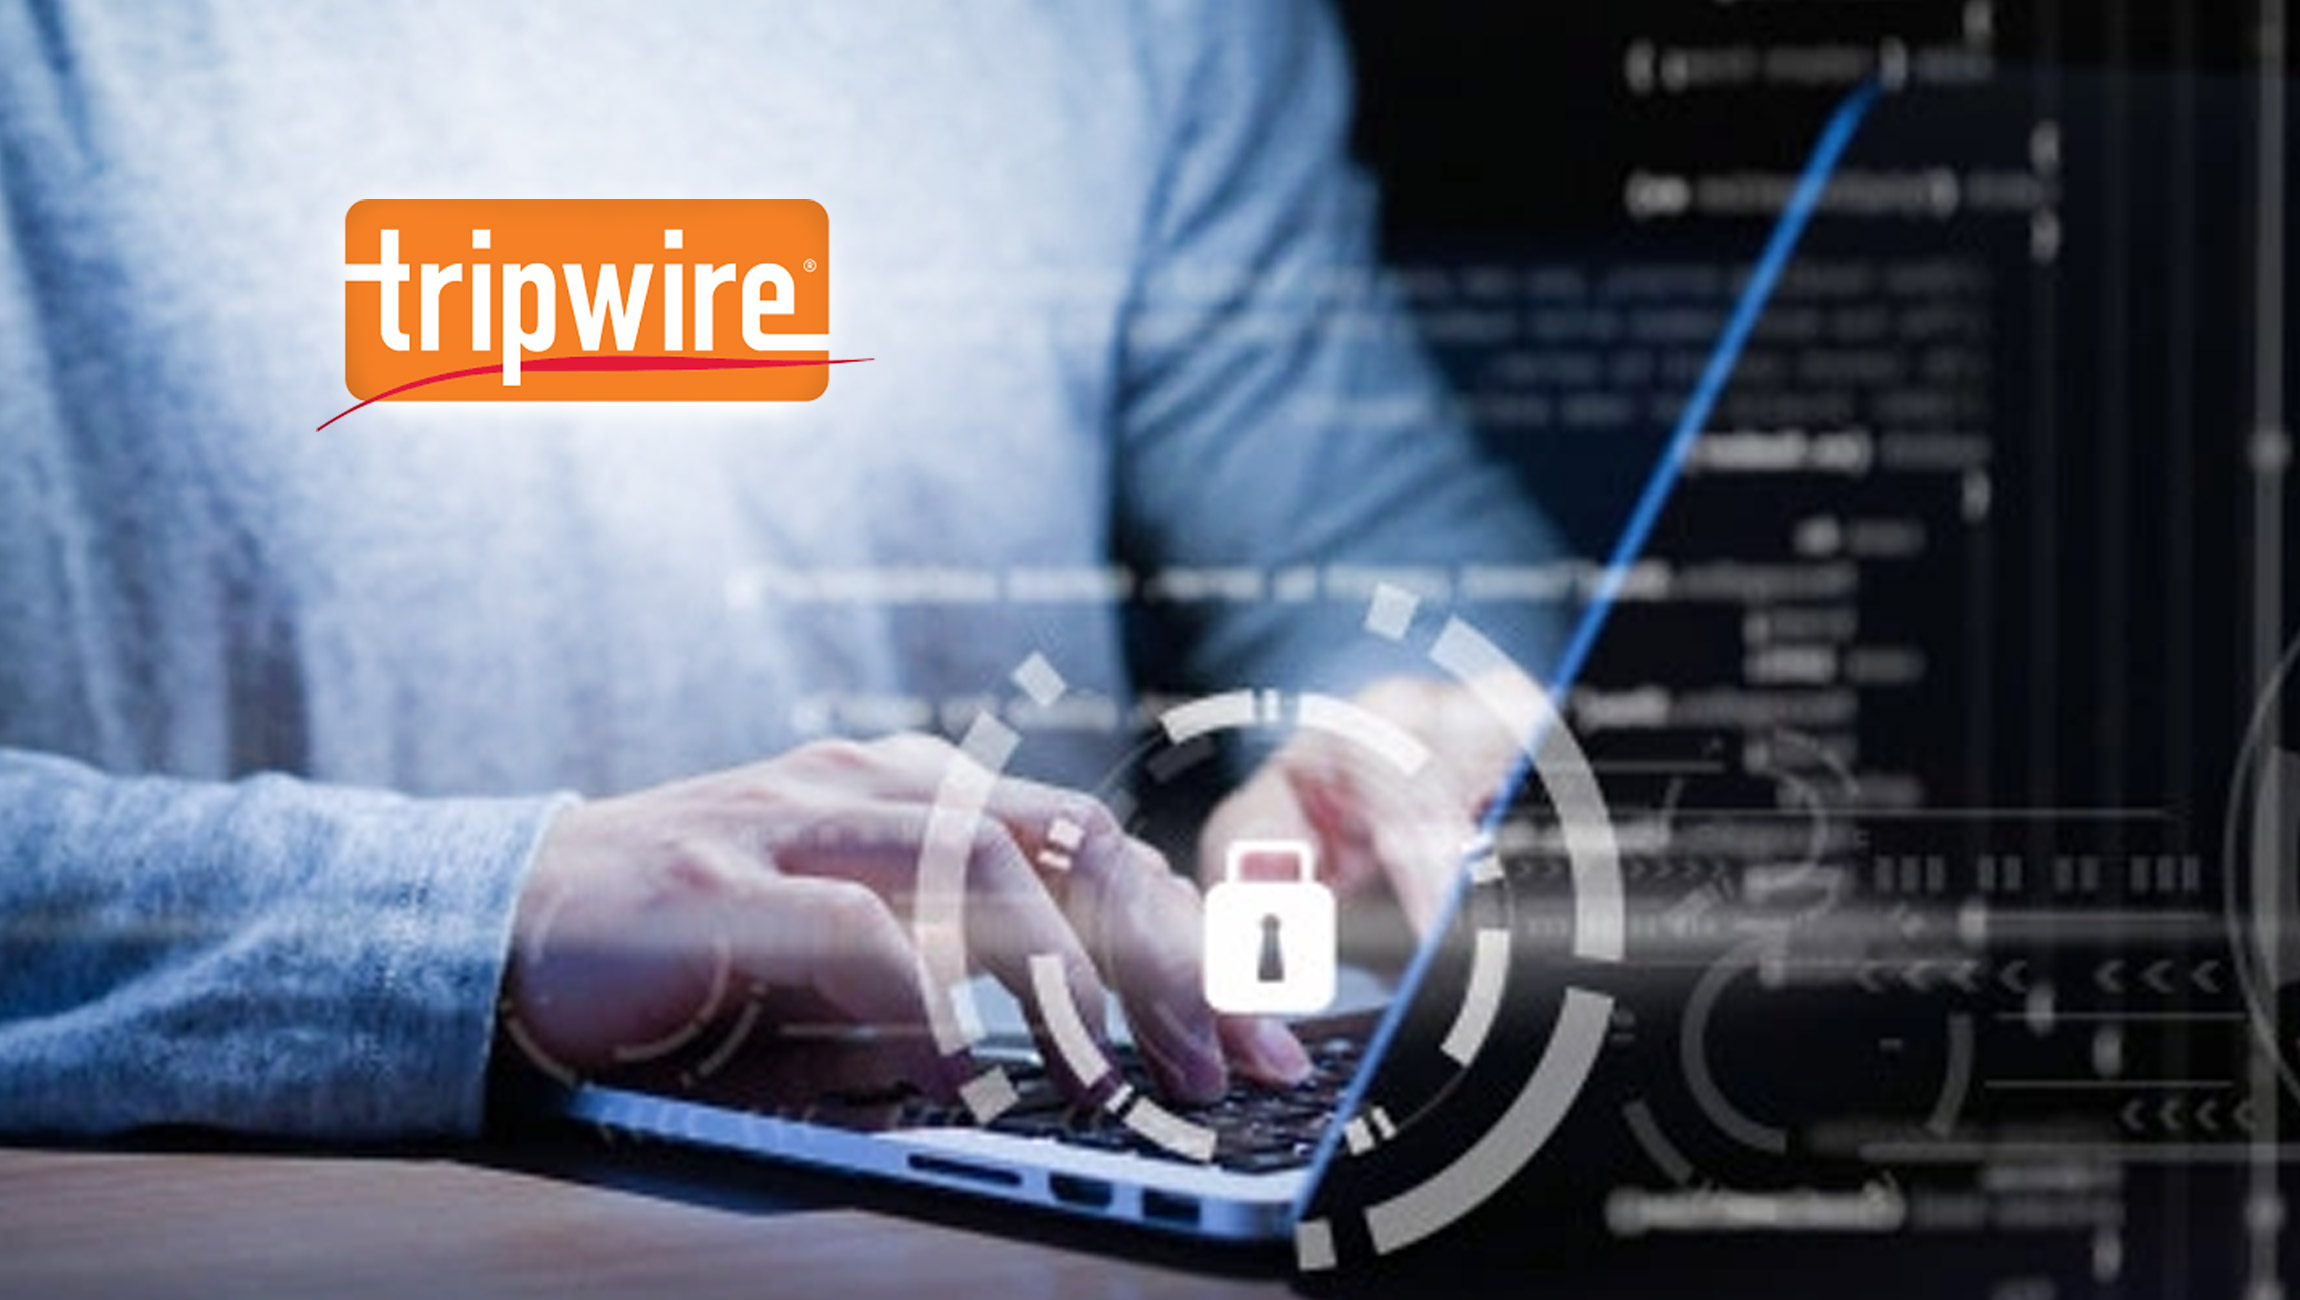 Tripwire-Survey--98%-of-Security-Professionals-Say-Multi-Cloud-Environments-Pose-Greater-Security-Challenges